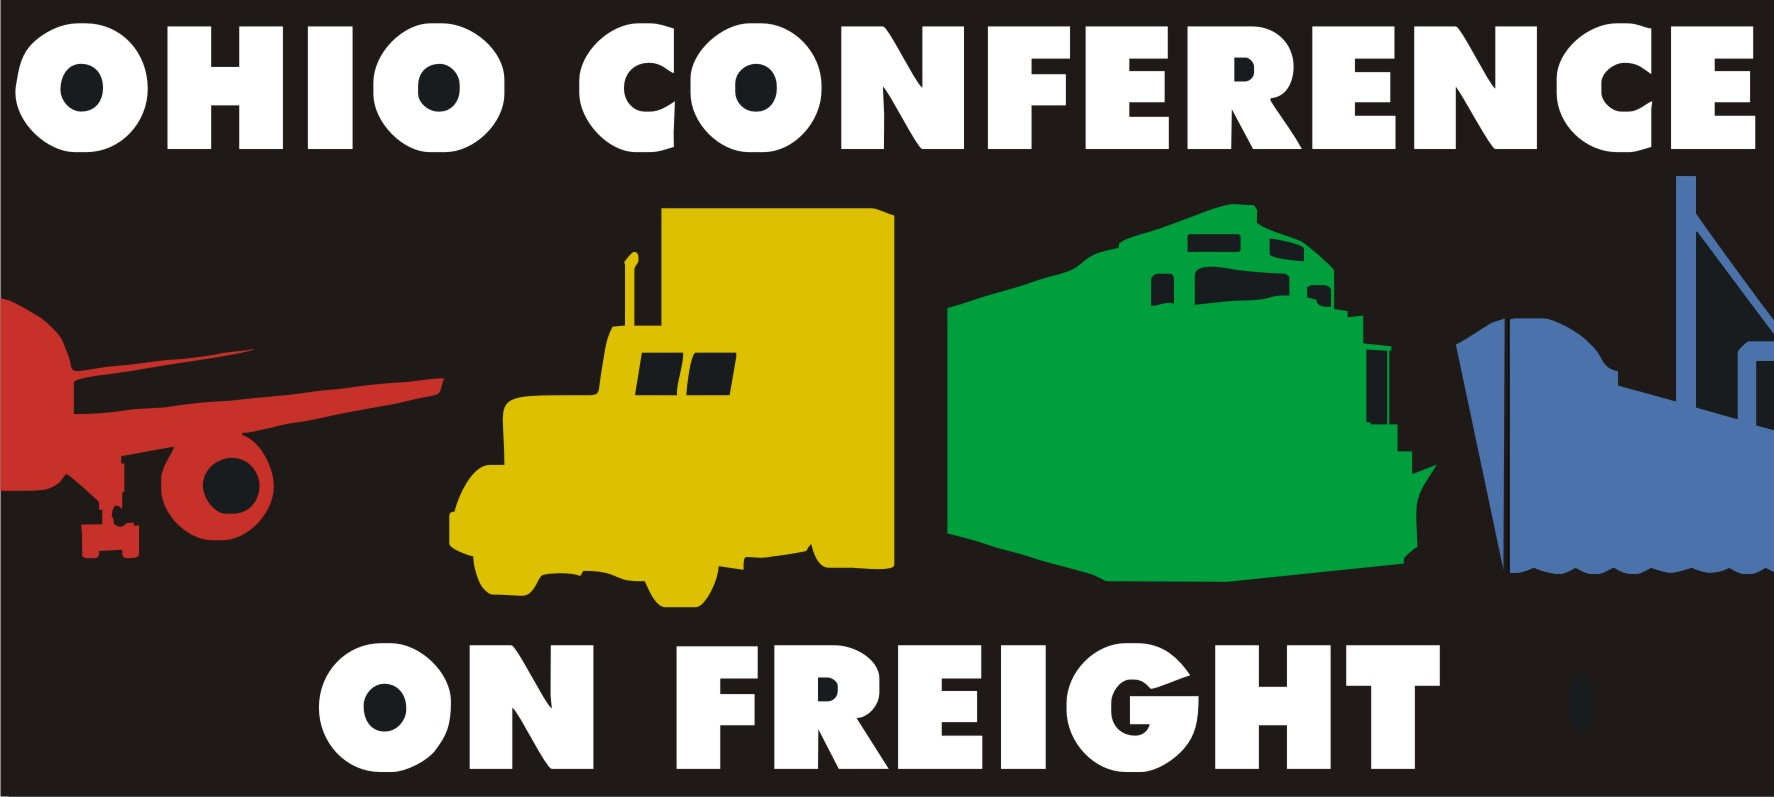 Ohio Conference on Freight 2015